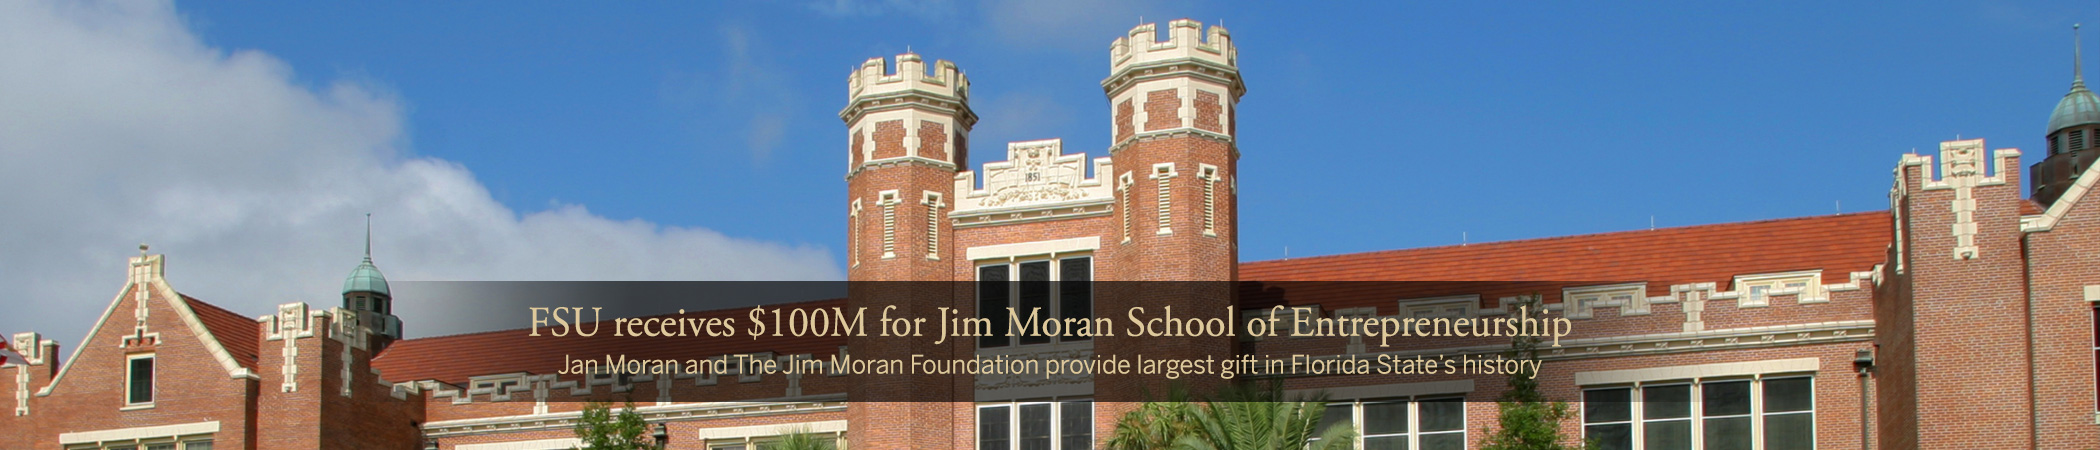 Florida State University Receives $100M to Create The Jim Moran School of Entrepreneurship